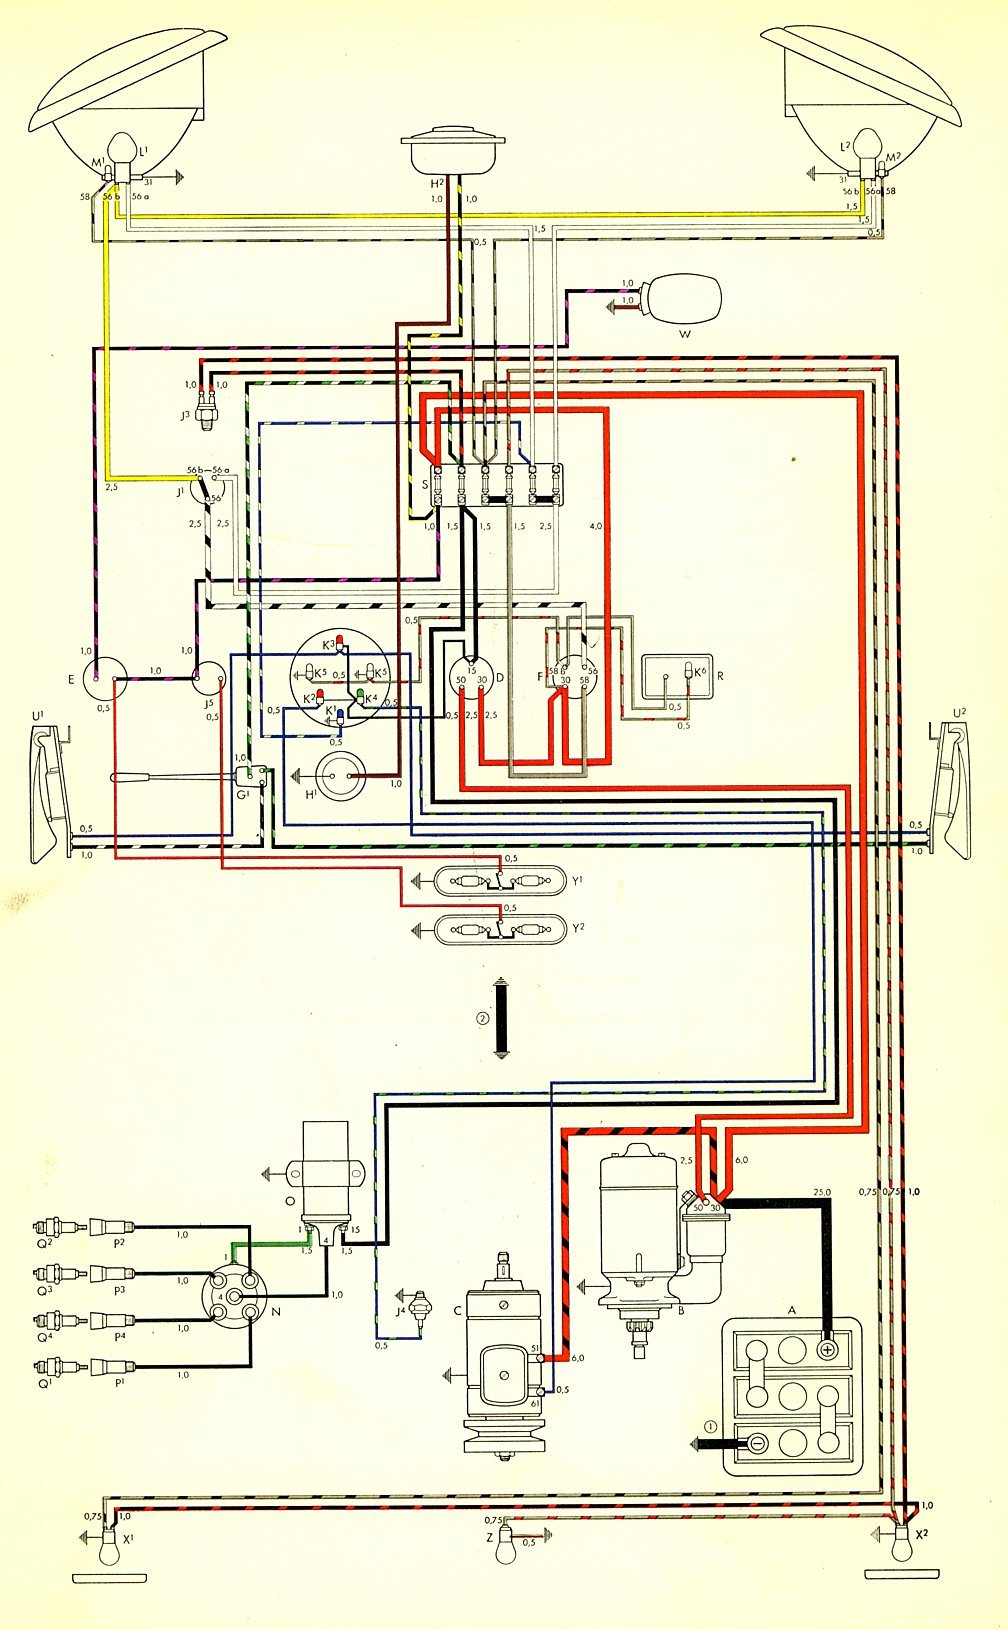 1963 Vw Engine Wiring Archive Of Automotive Diagram Harness Scam Van Another Blog About U2022 Rh Ok2 Infoservice Ru